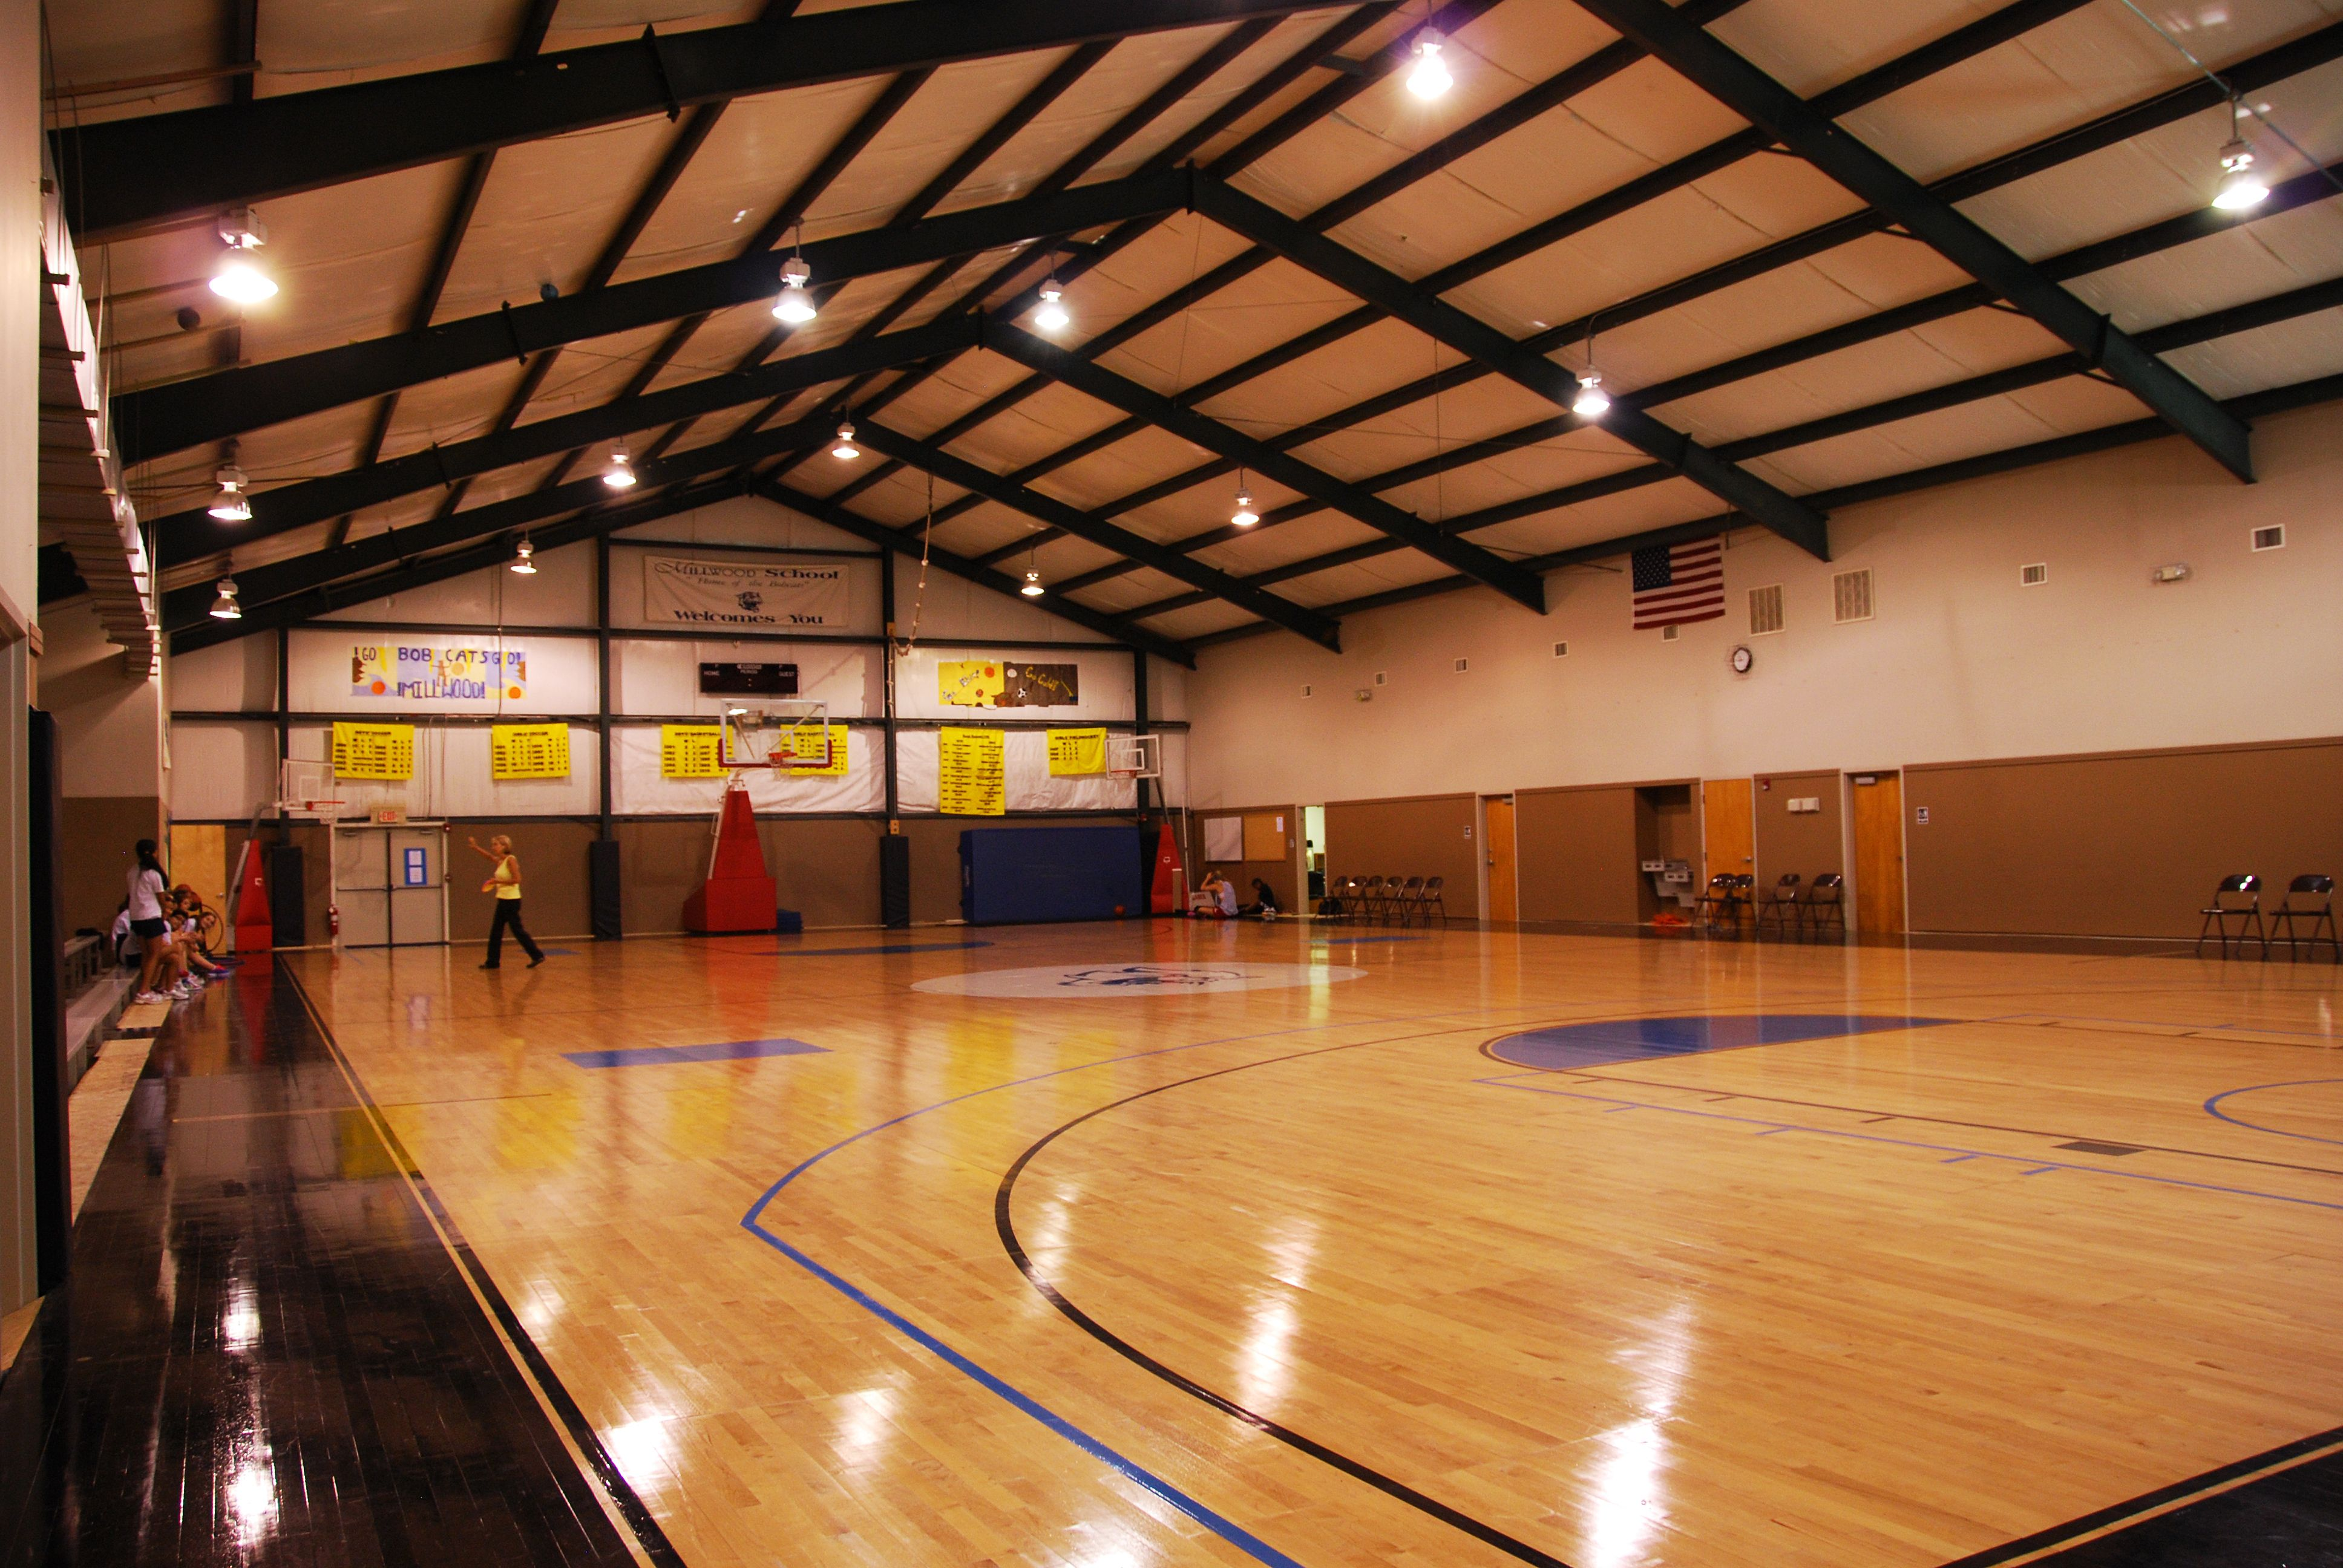 The full size cornerstone gymnasium provides excellent for Basketball gym dimensions